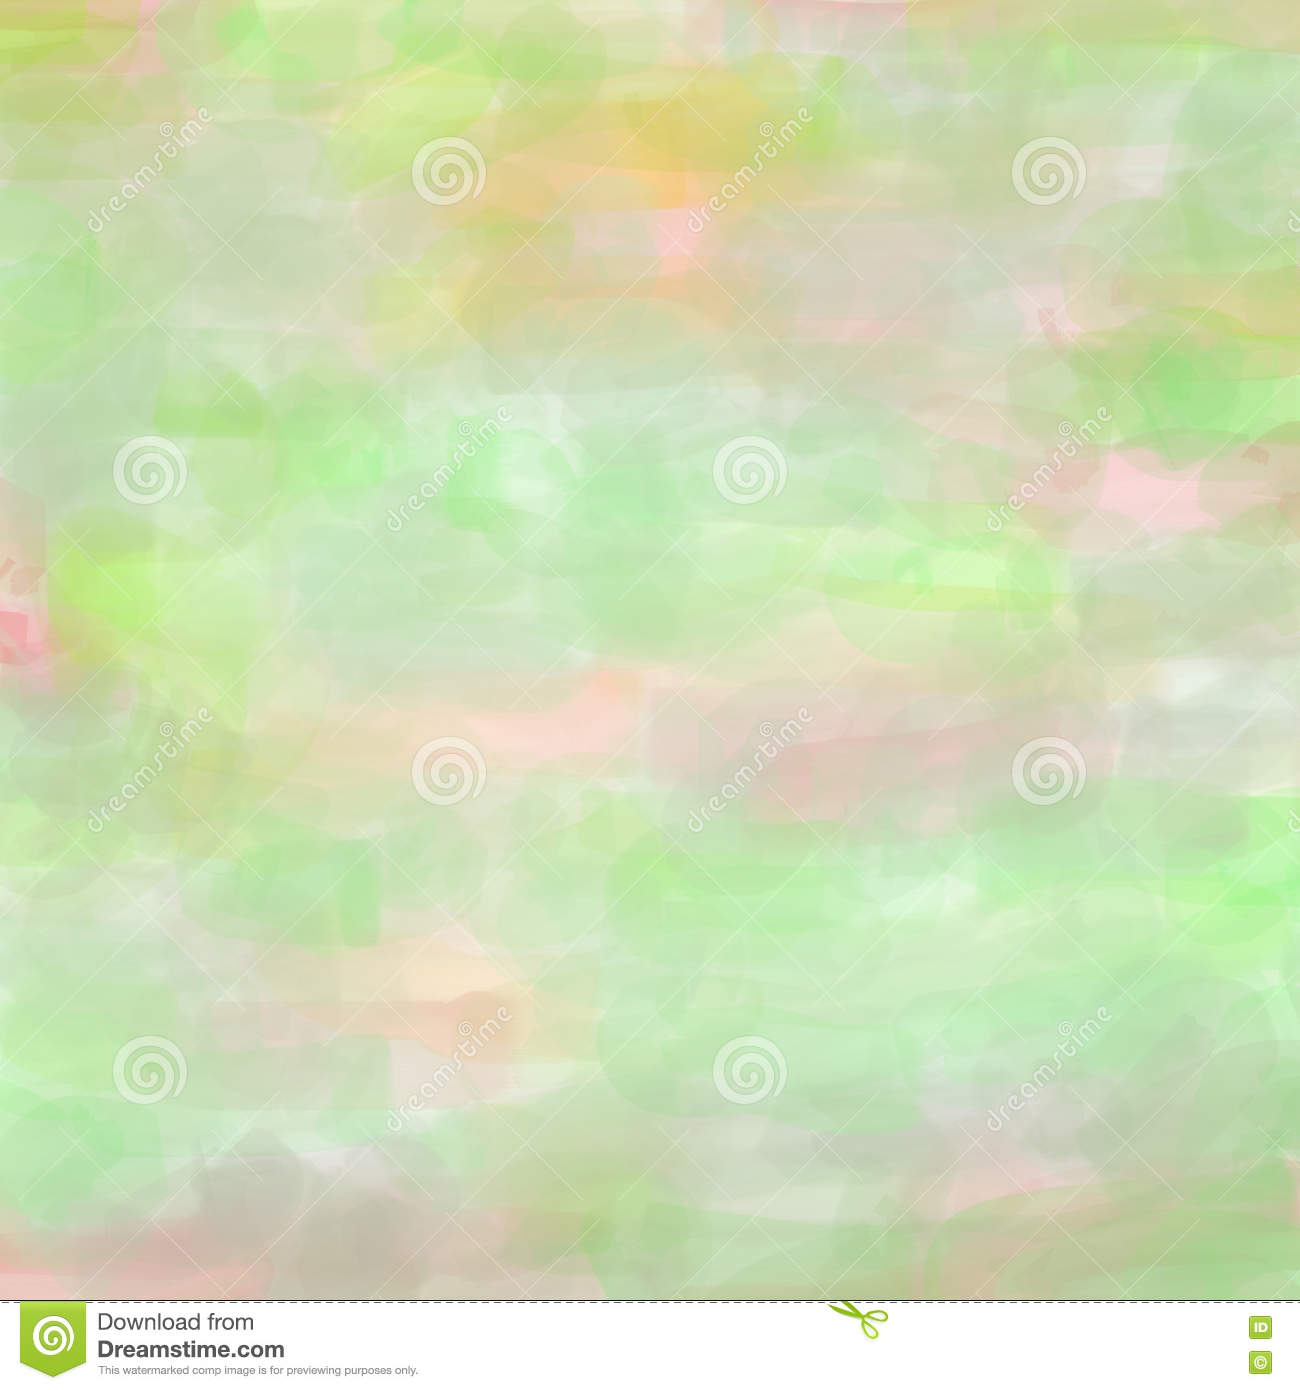 watercolor background with brushstrokes in pink and green